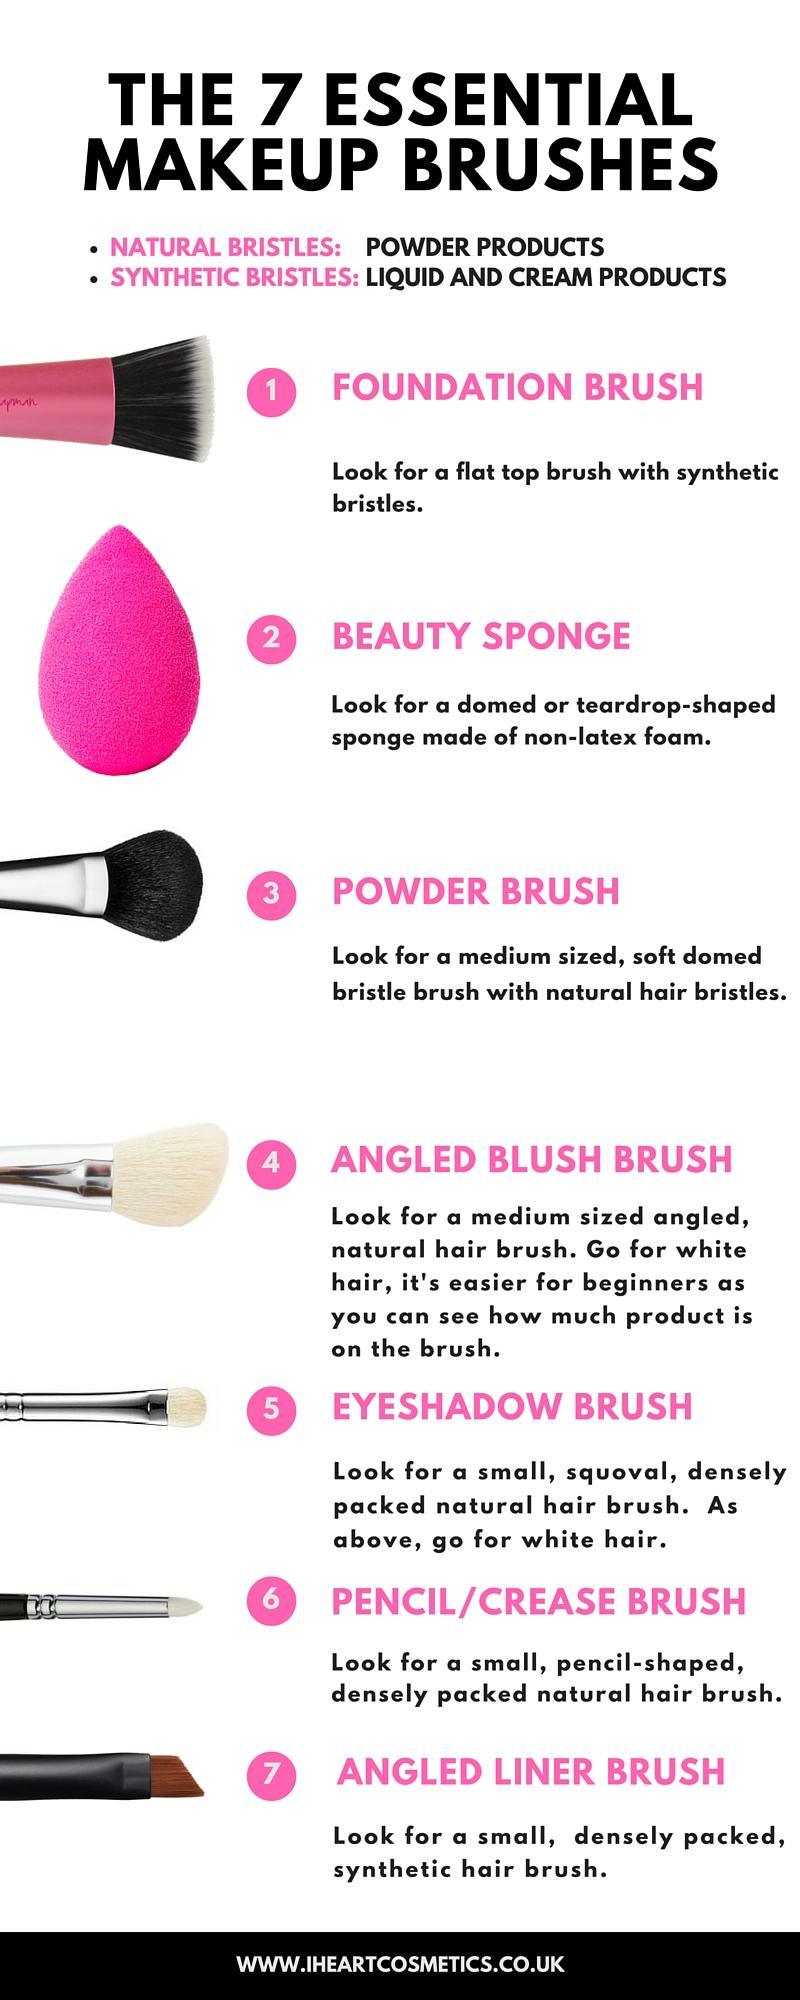 The 7 Essential Makeup Brushes - I Heart Cosmetics